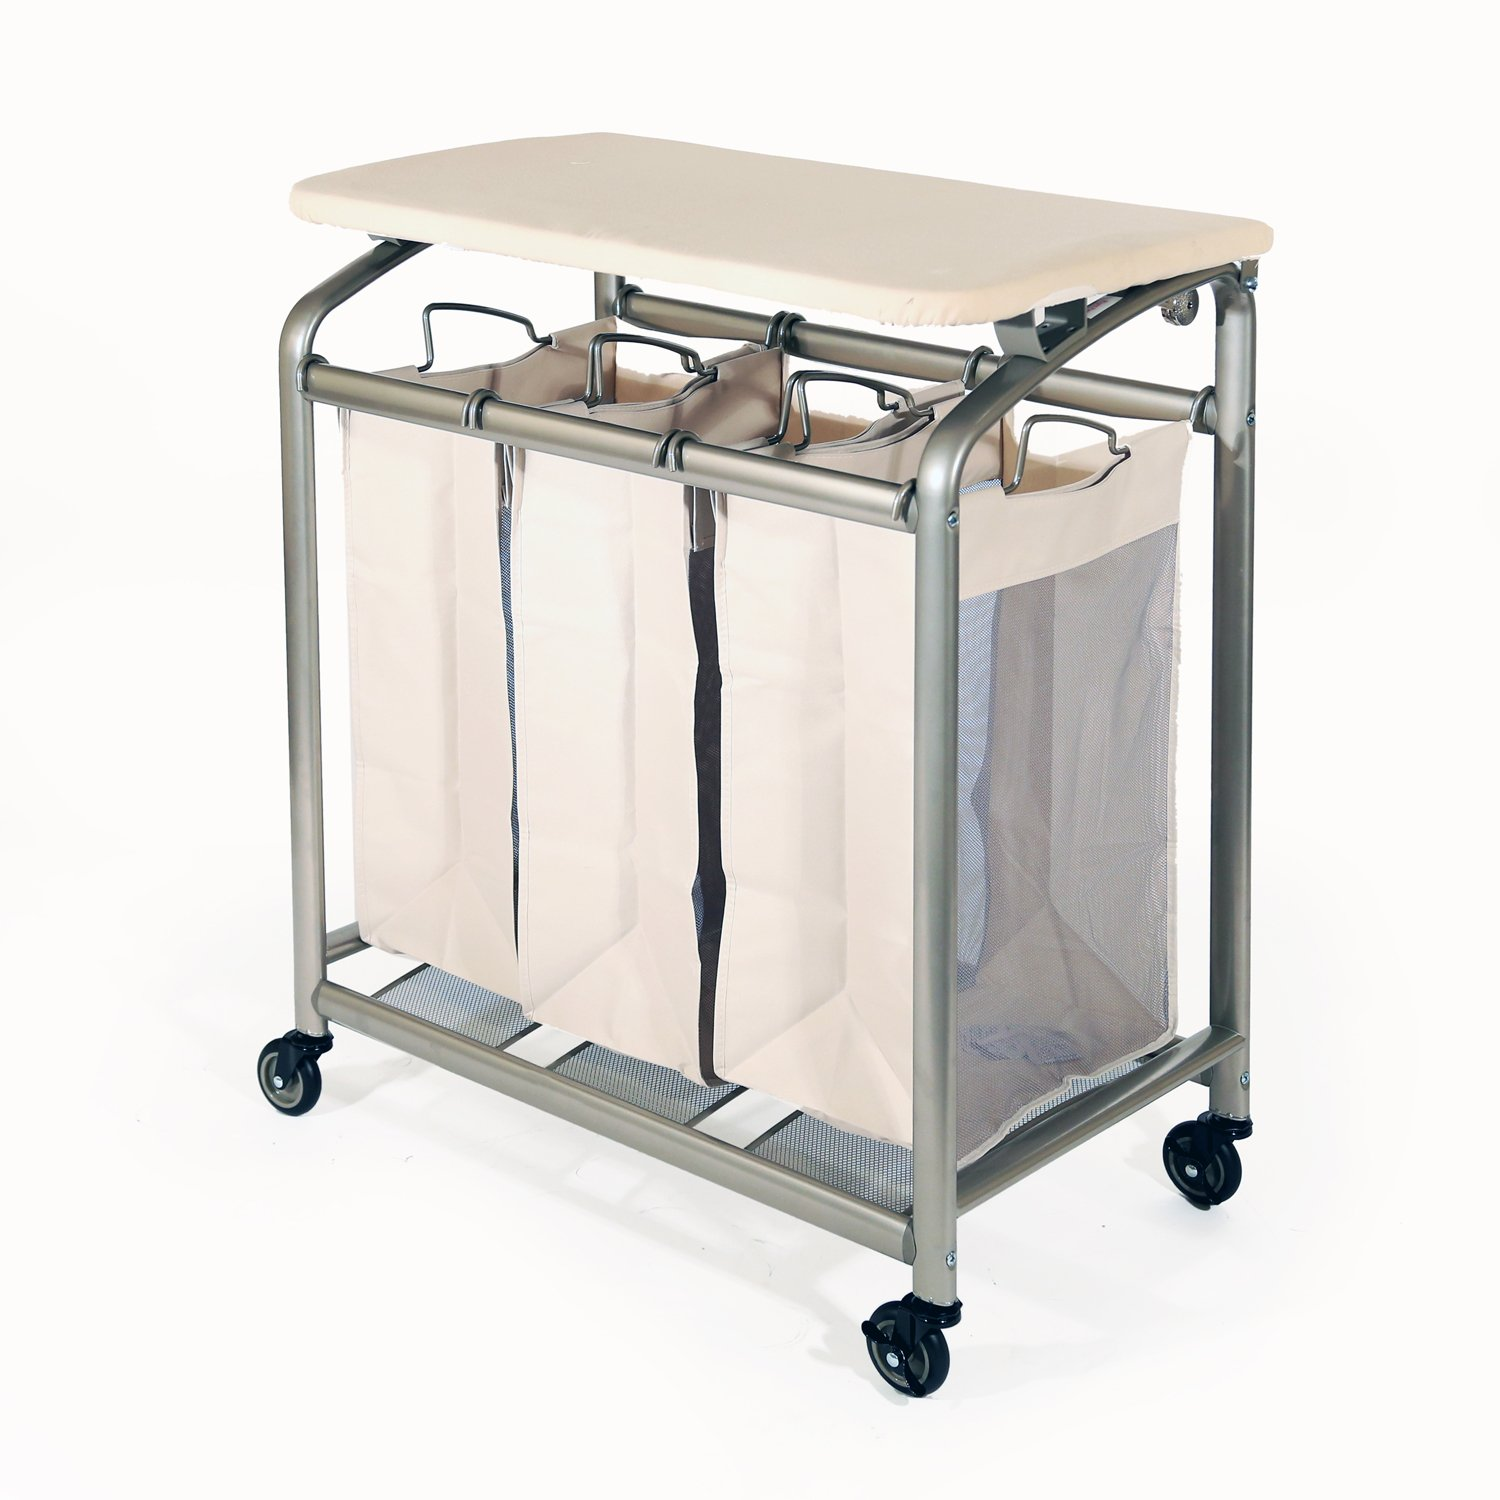 Amazon.com: Seville Classics 3 Bag Folding Laundry Sorter: Home U0026 Kitchen